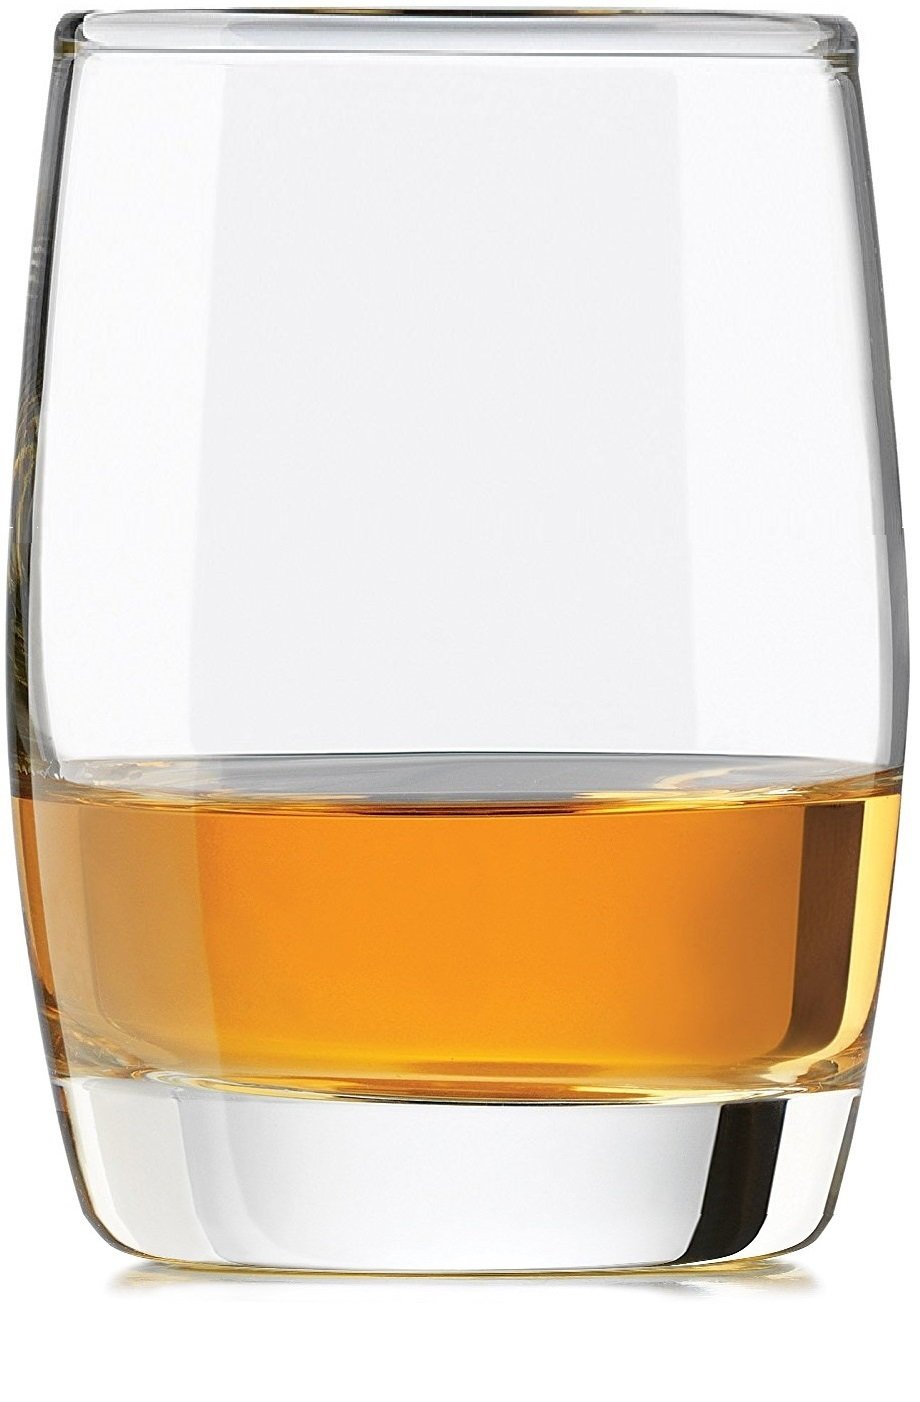 Circleware Heavy Base Scotch Whiskey Glass Drinking Glasses, Set of 4, Entertainment Dinnerware Glassware for Water, Juice, Beer & Bar Liquor Dining Decor Beverage Cups Gifts, 12 oz, Glen Rocks